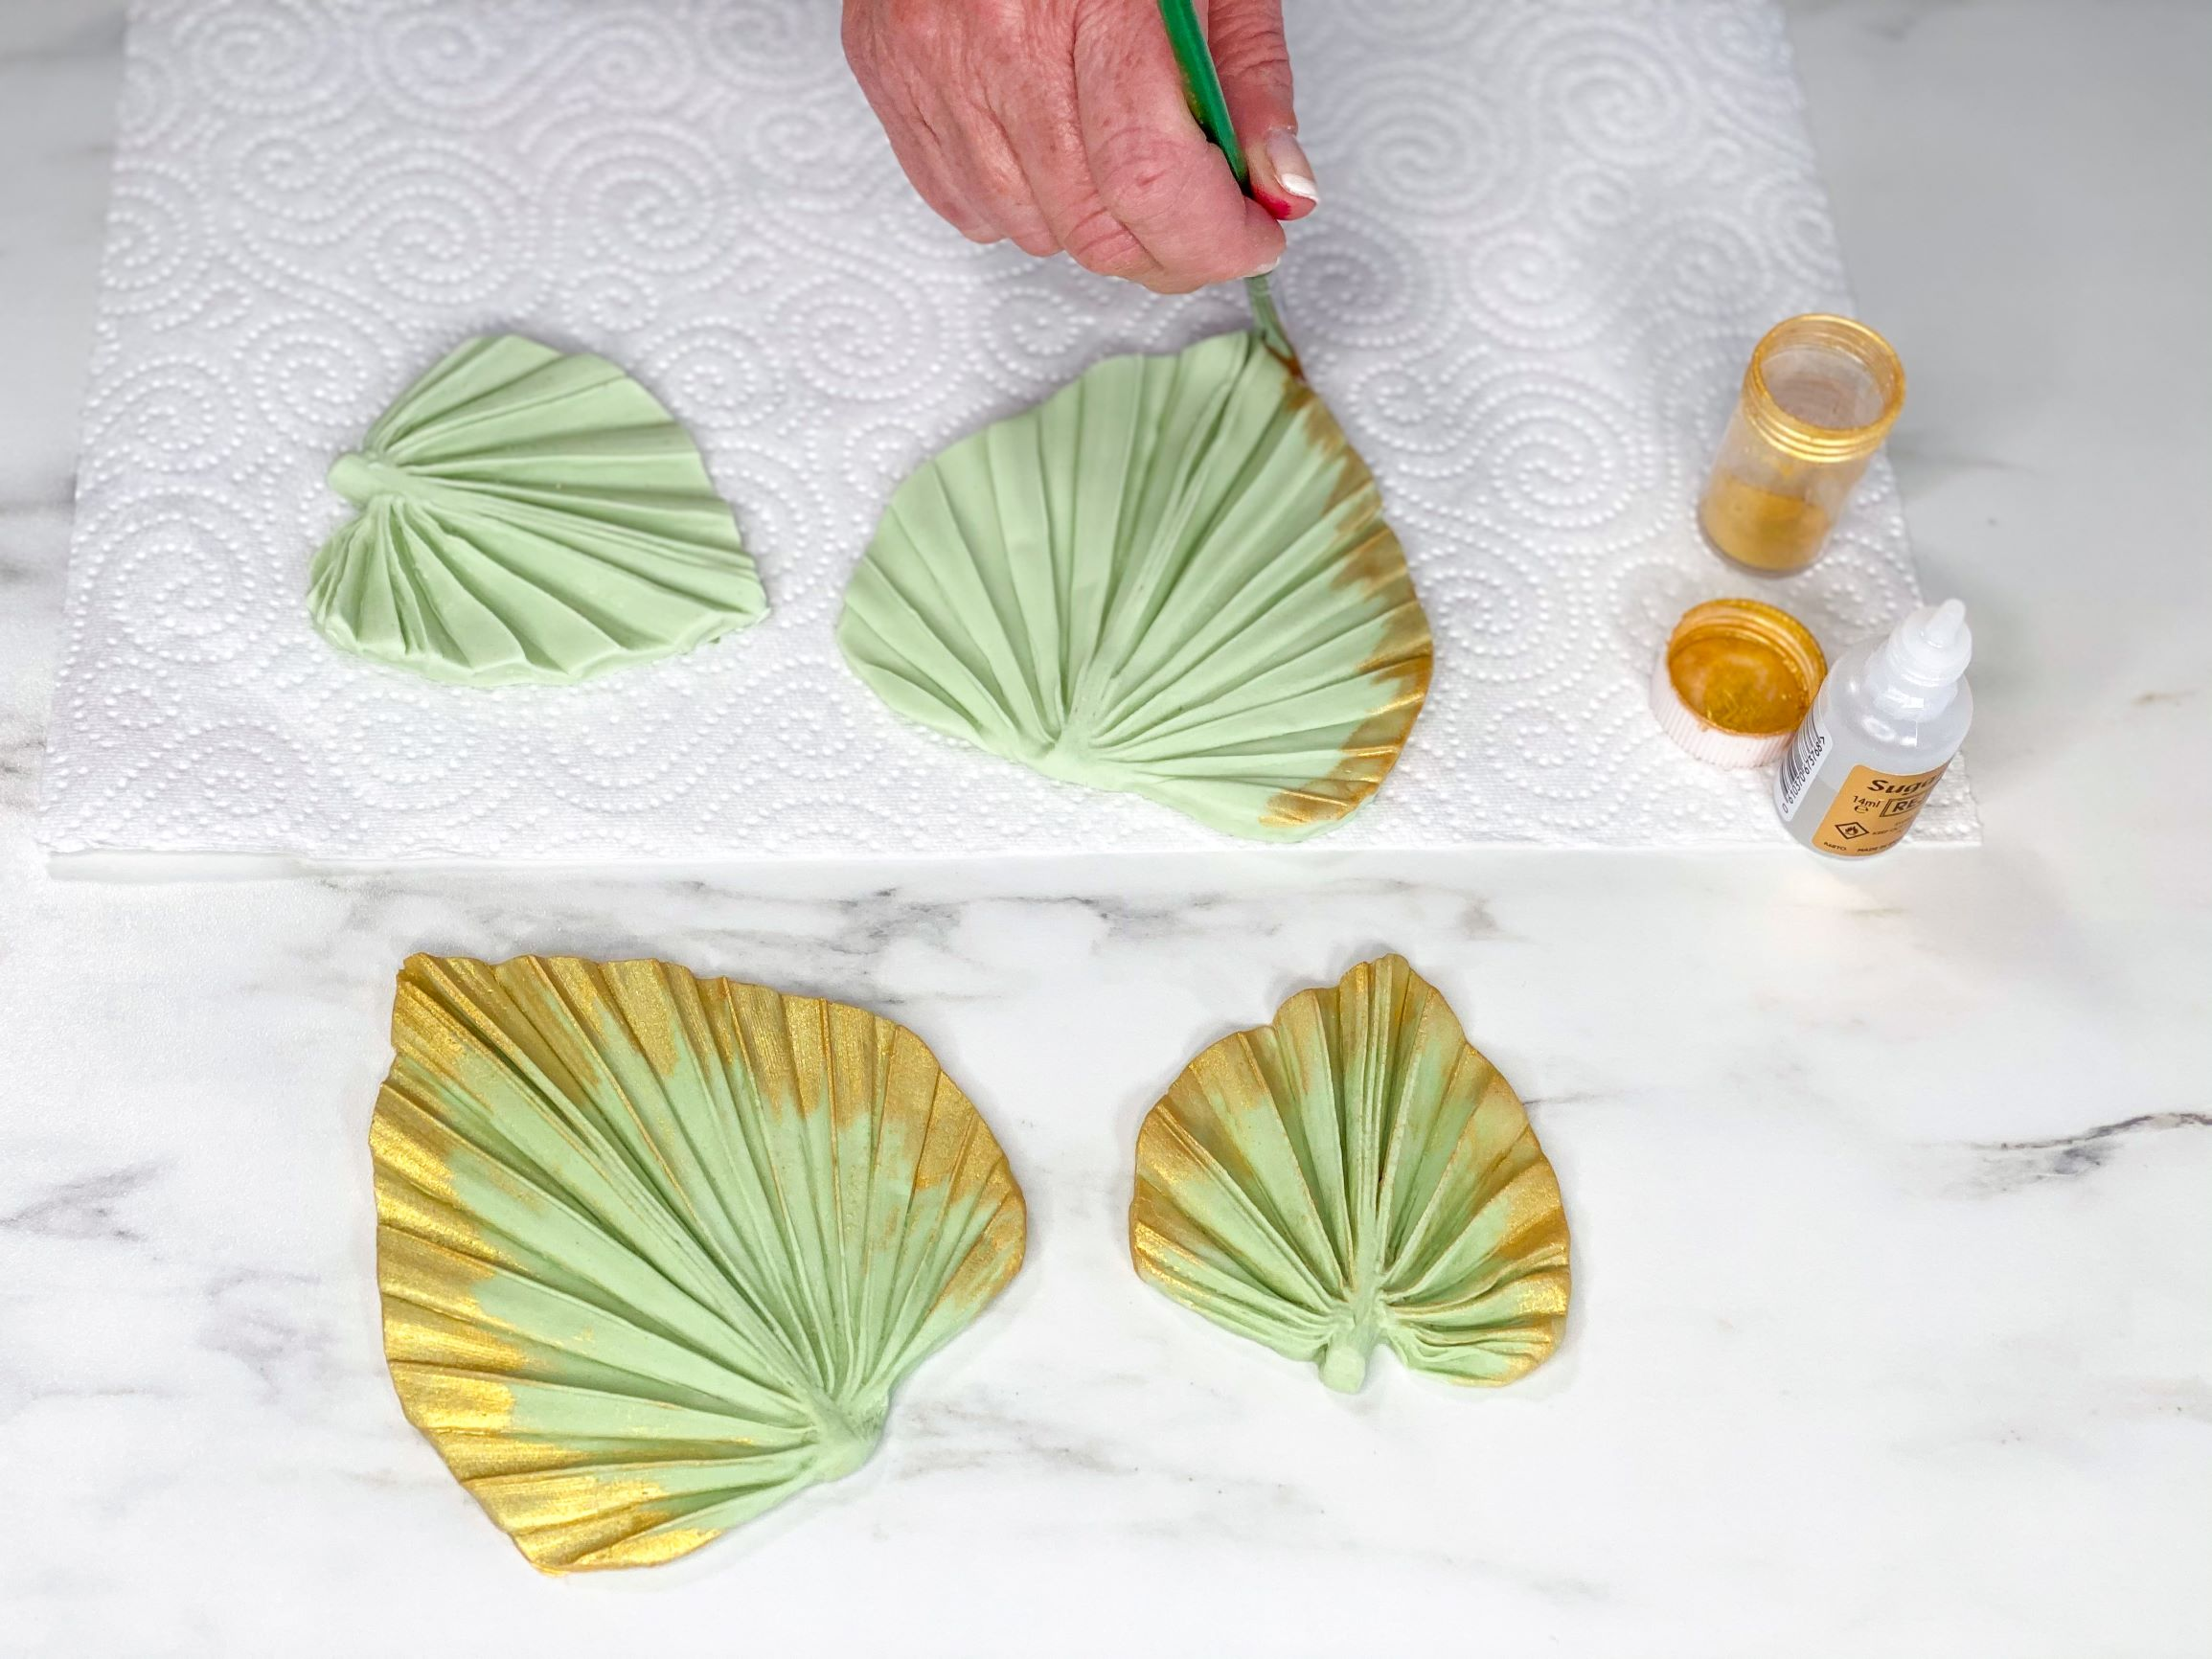 Create Leaves with Palm Spear Moulds